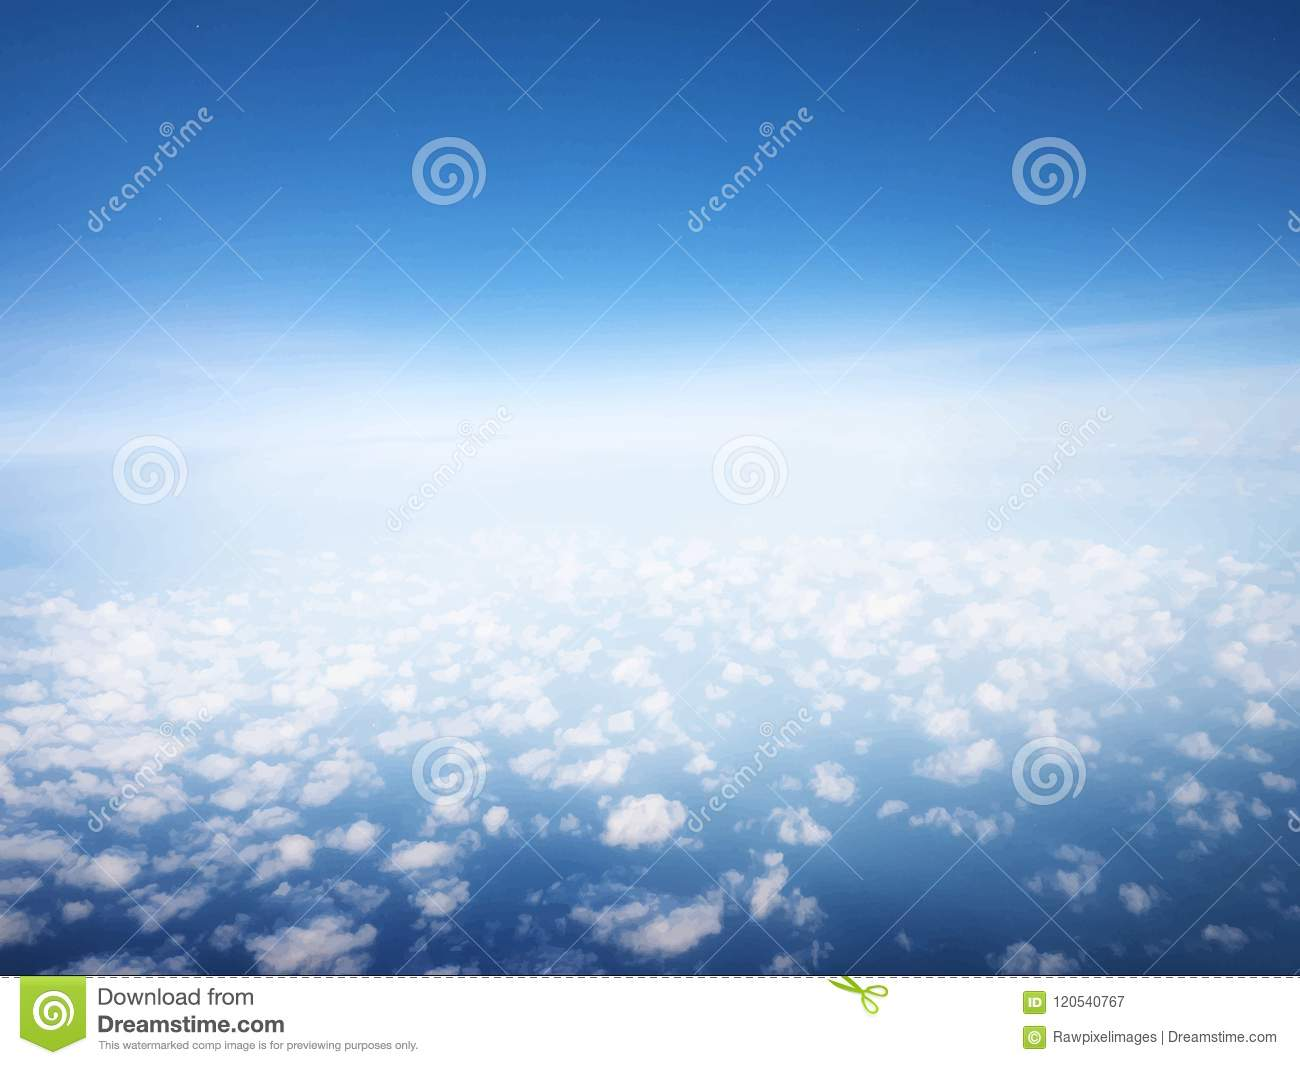 blue sky with clouds wallpaper stock vector - illustration of blank